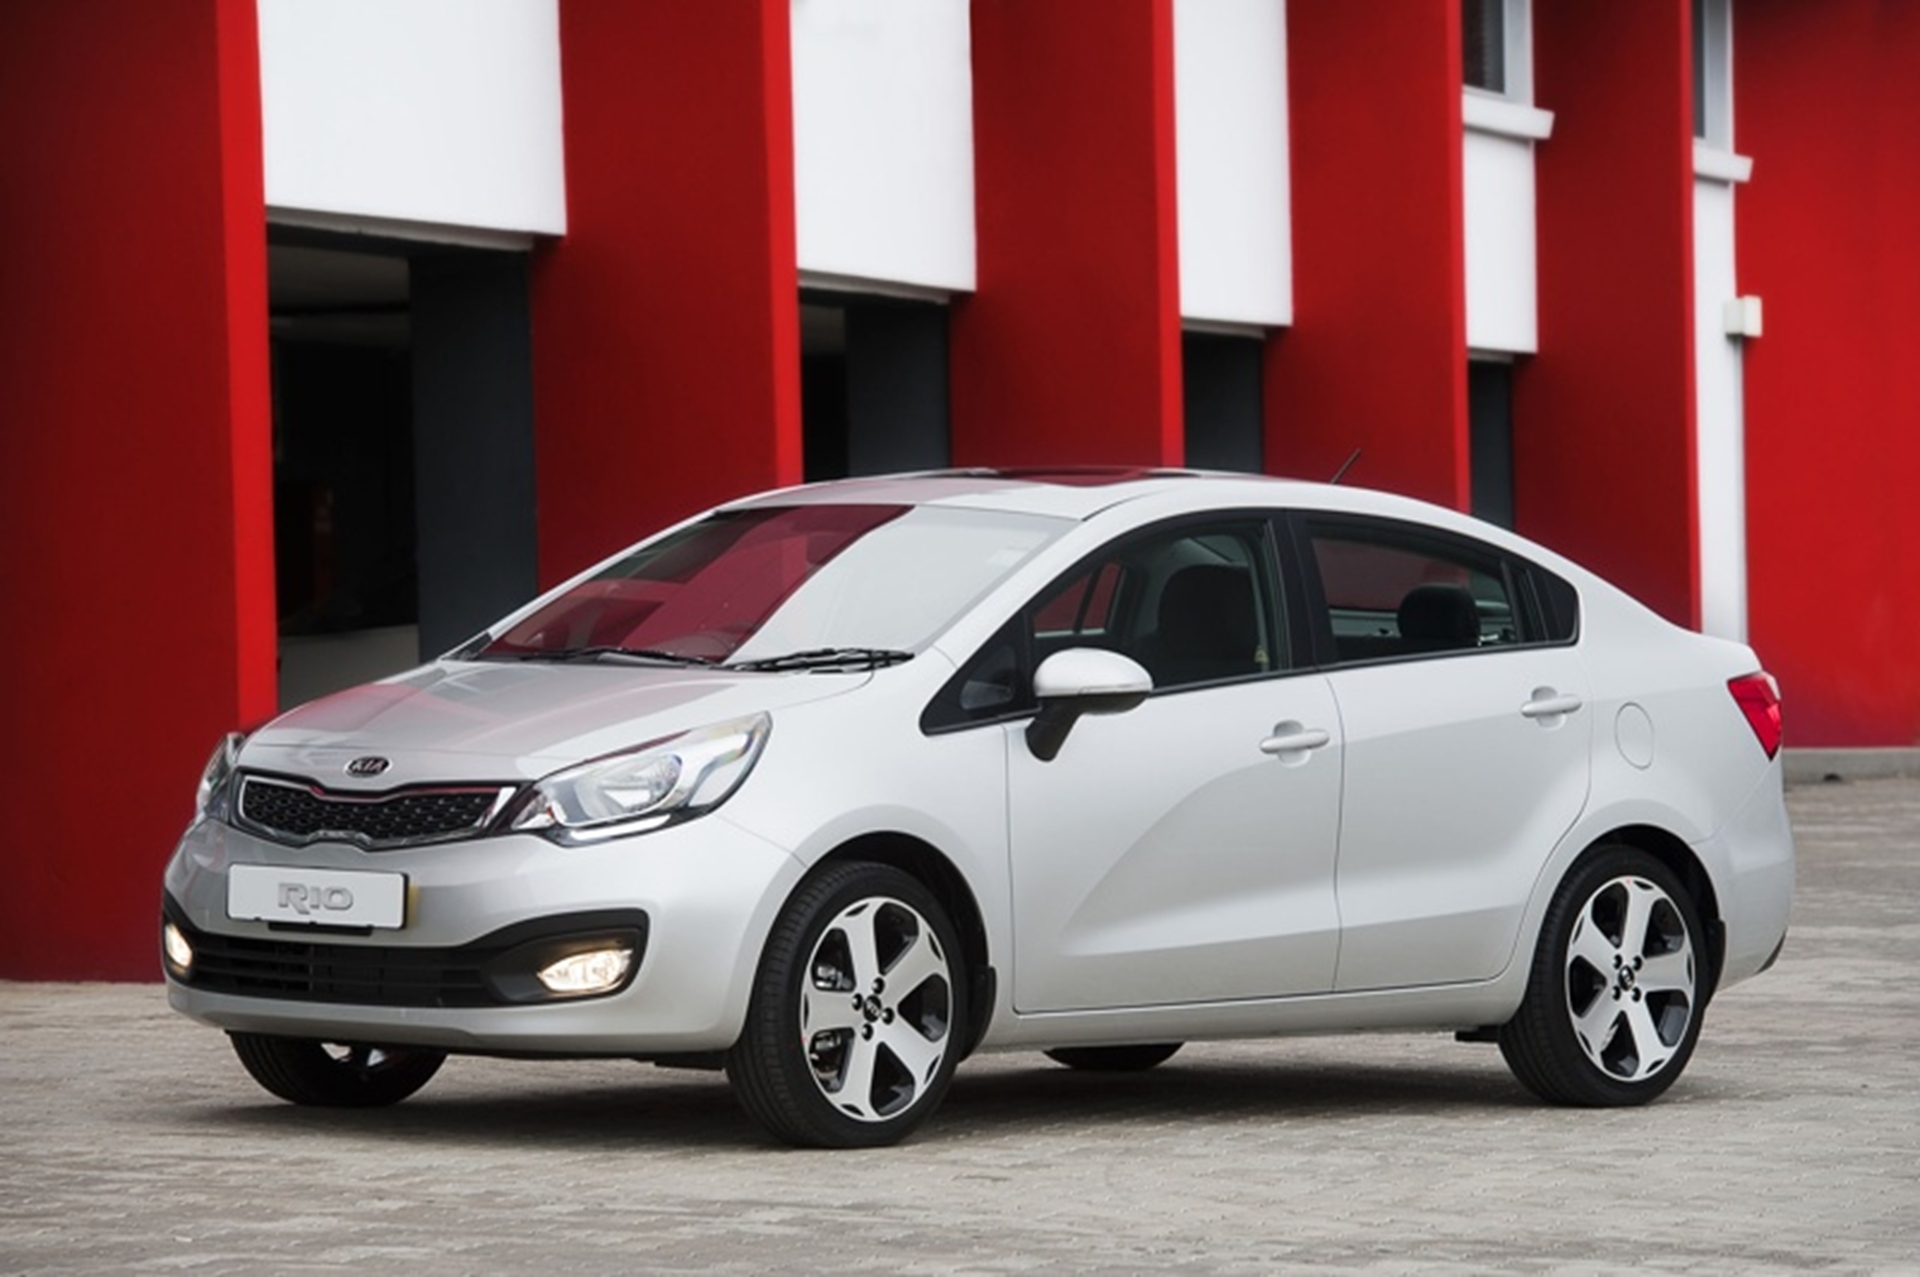 KIA Rio Standard Equipment